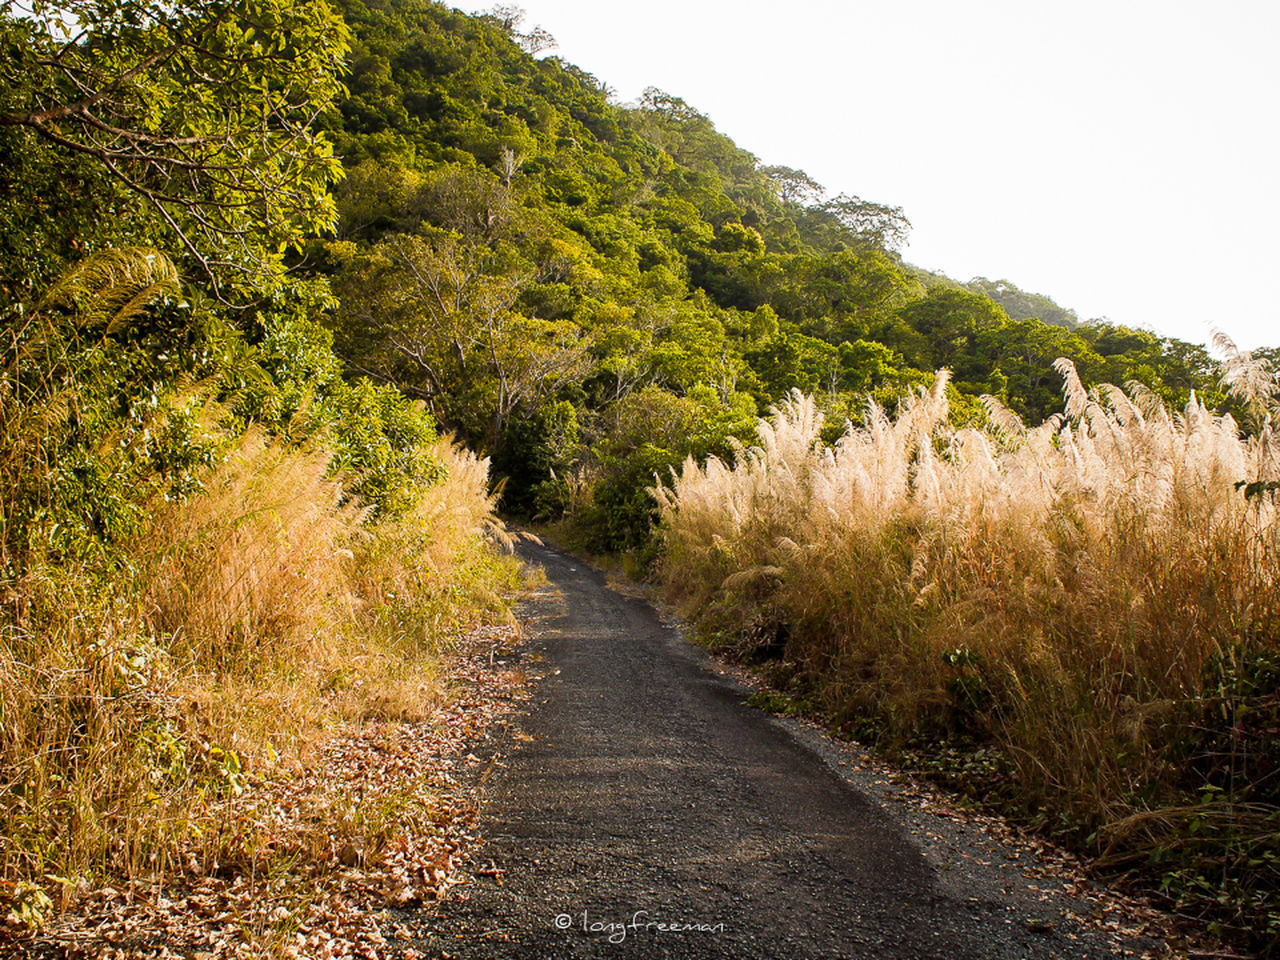 tranquility, nature, tranquil scene, the way forward, scenics, landscape, tree, grass, plant, no people, outdoors, day, growth, beauty in nature, field, green color, road, clear sky, rural scene, sky